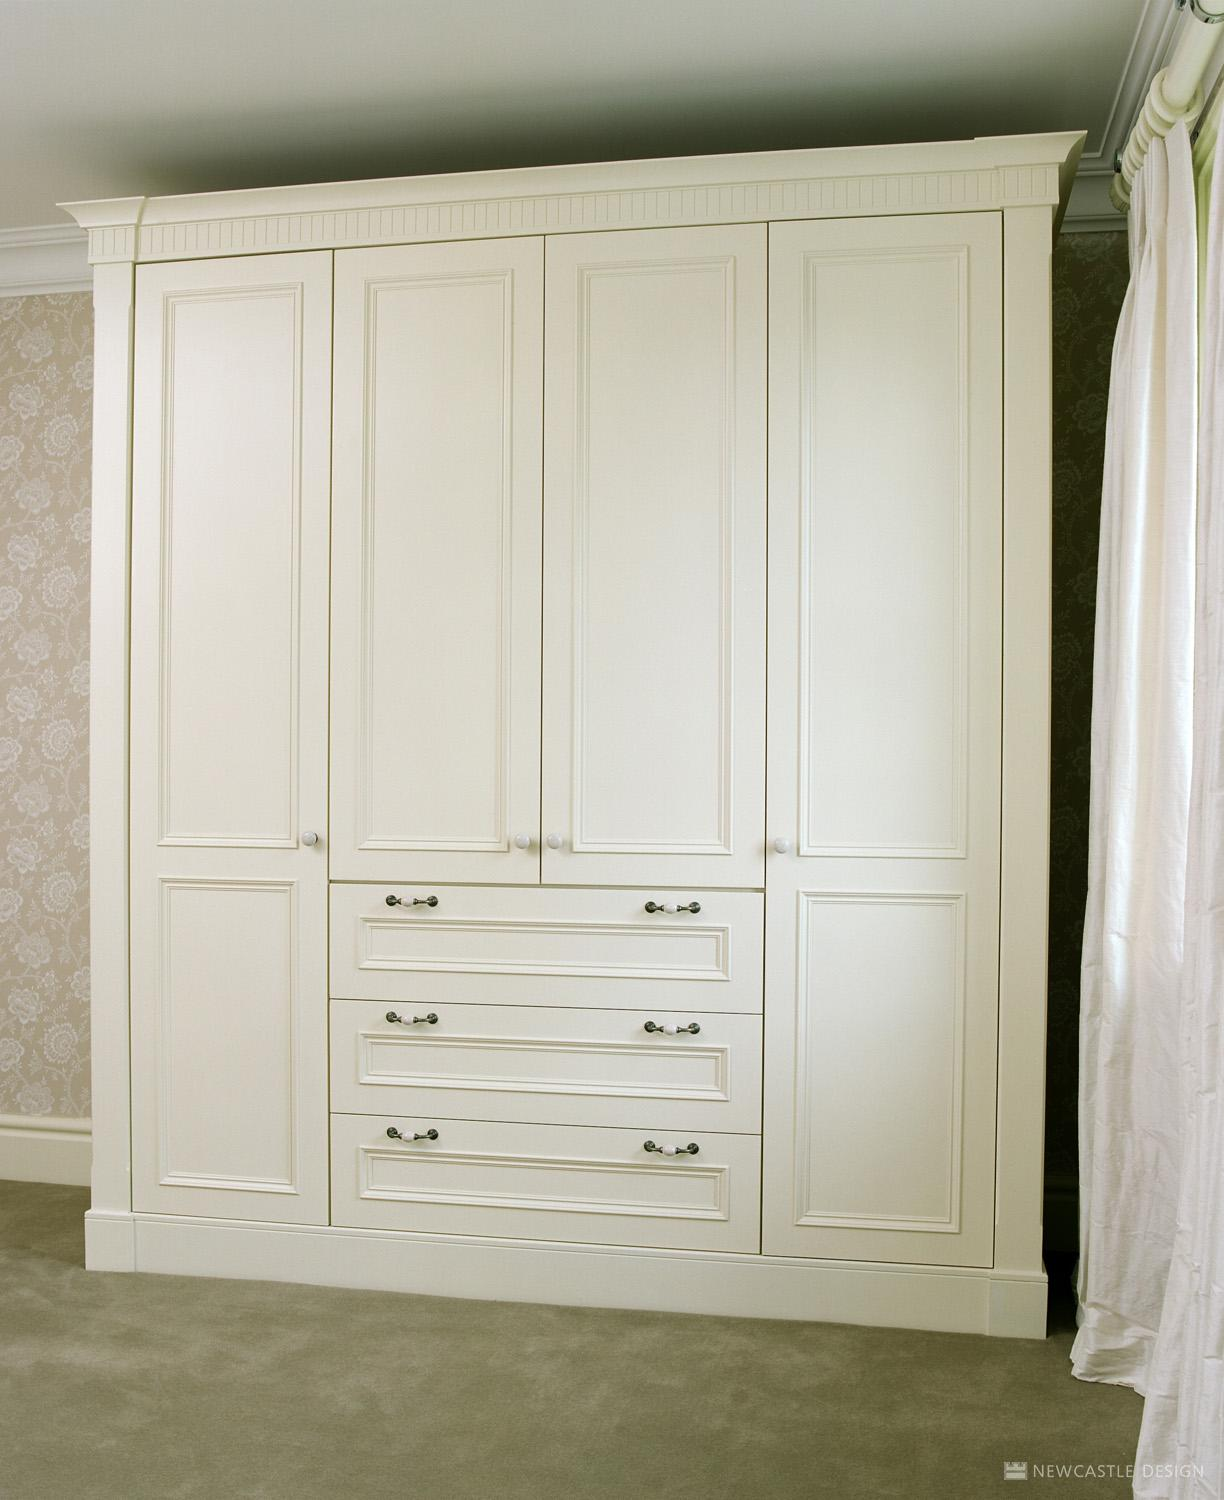 Bedroom Closets And Wardrobes: Fitted Wardrobes & Bedroom Furniture Dublin, Ireland